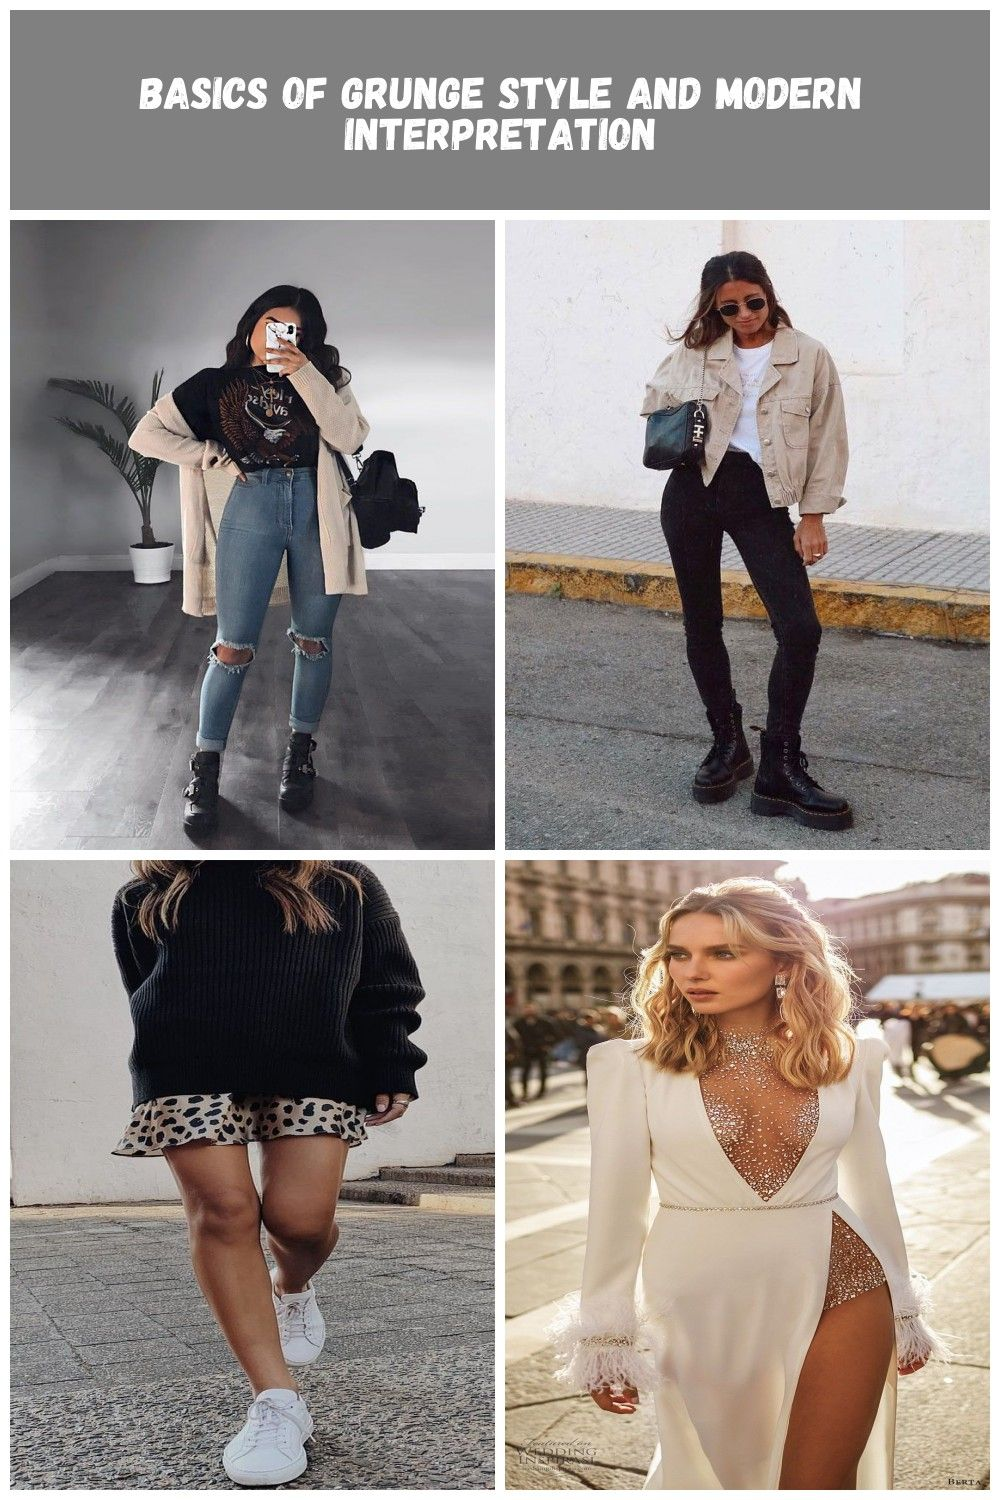 Ripped Jeans With Long Cardigan #longcardigan #rippedjeans ★ Edgy grunge style from the 90s to inspire your street style. #grungestyle #grungeoutfit...